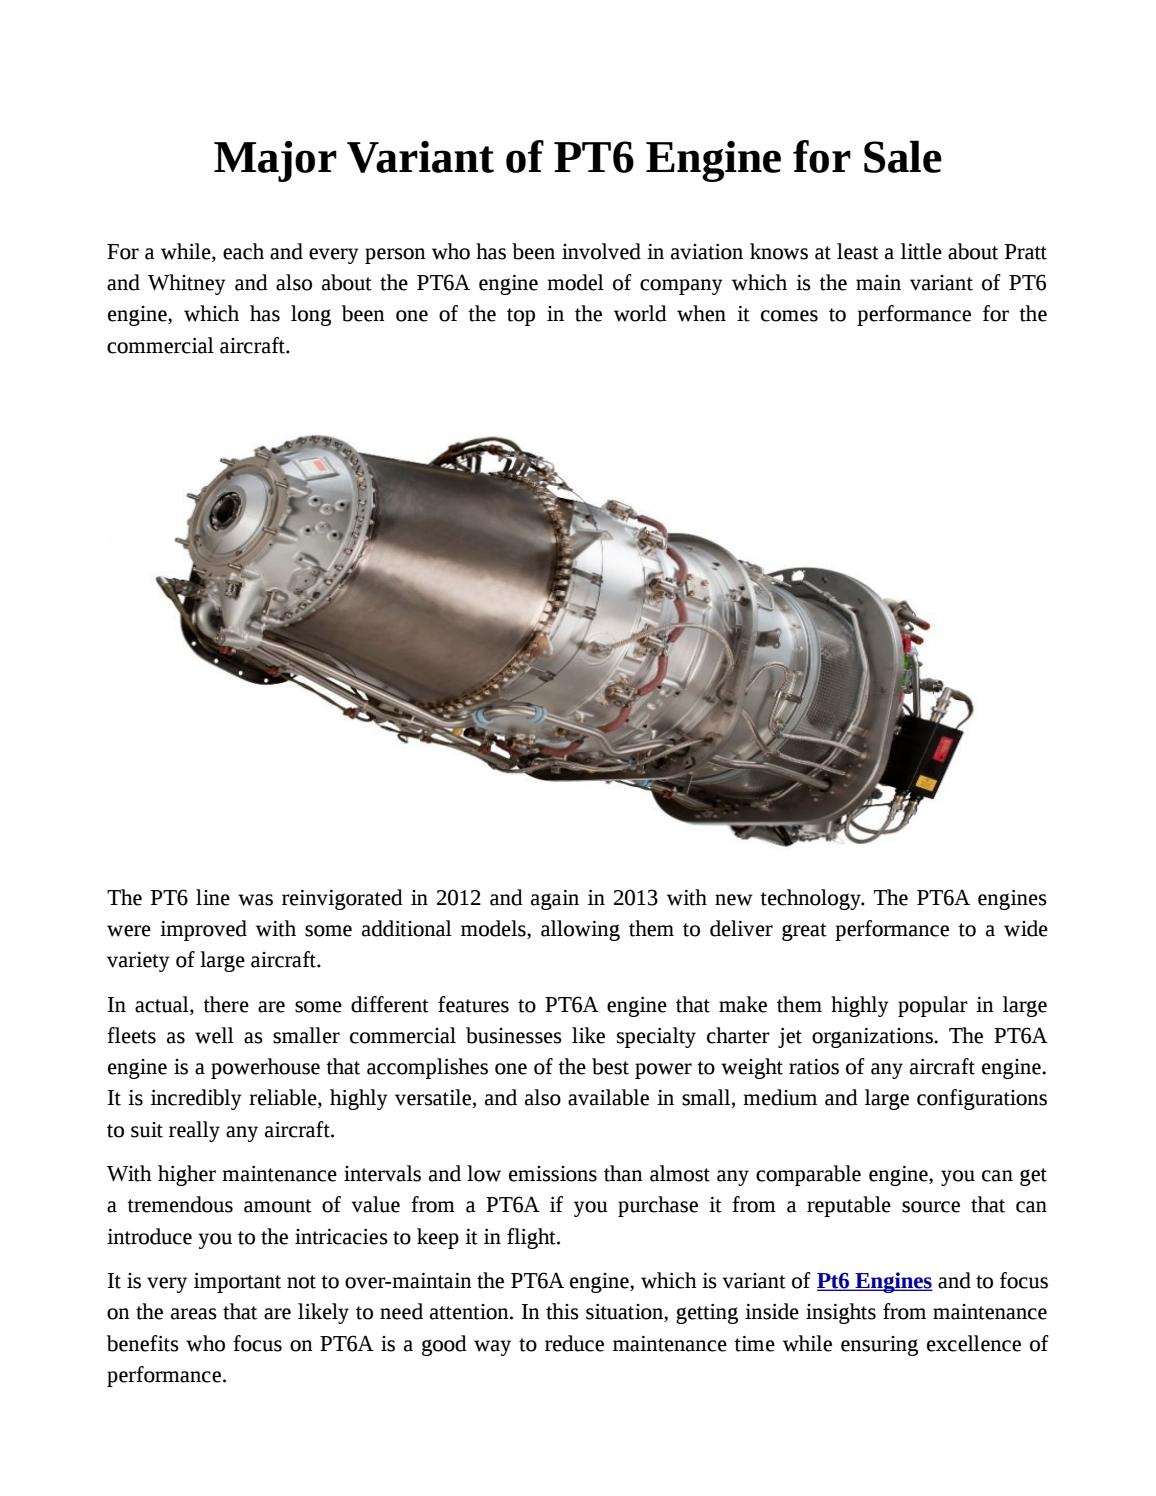 Pt6 engine For Sale With Great Offers by marvin92sage - issuu